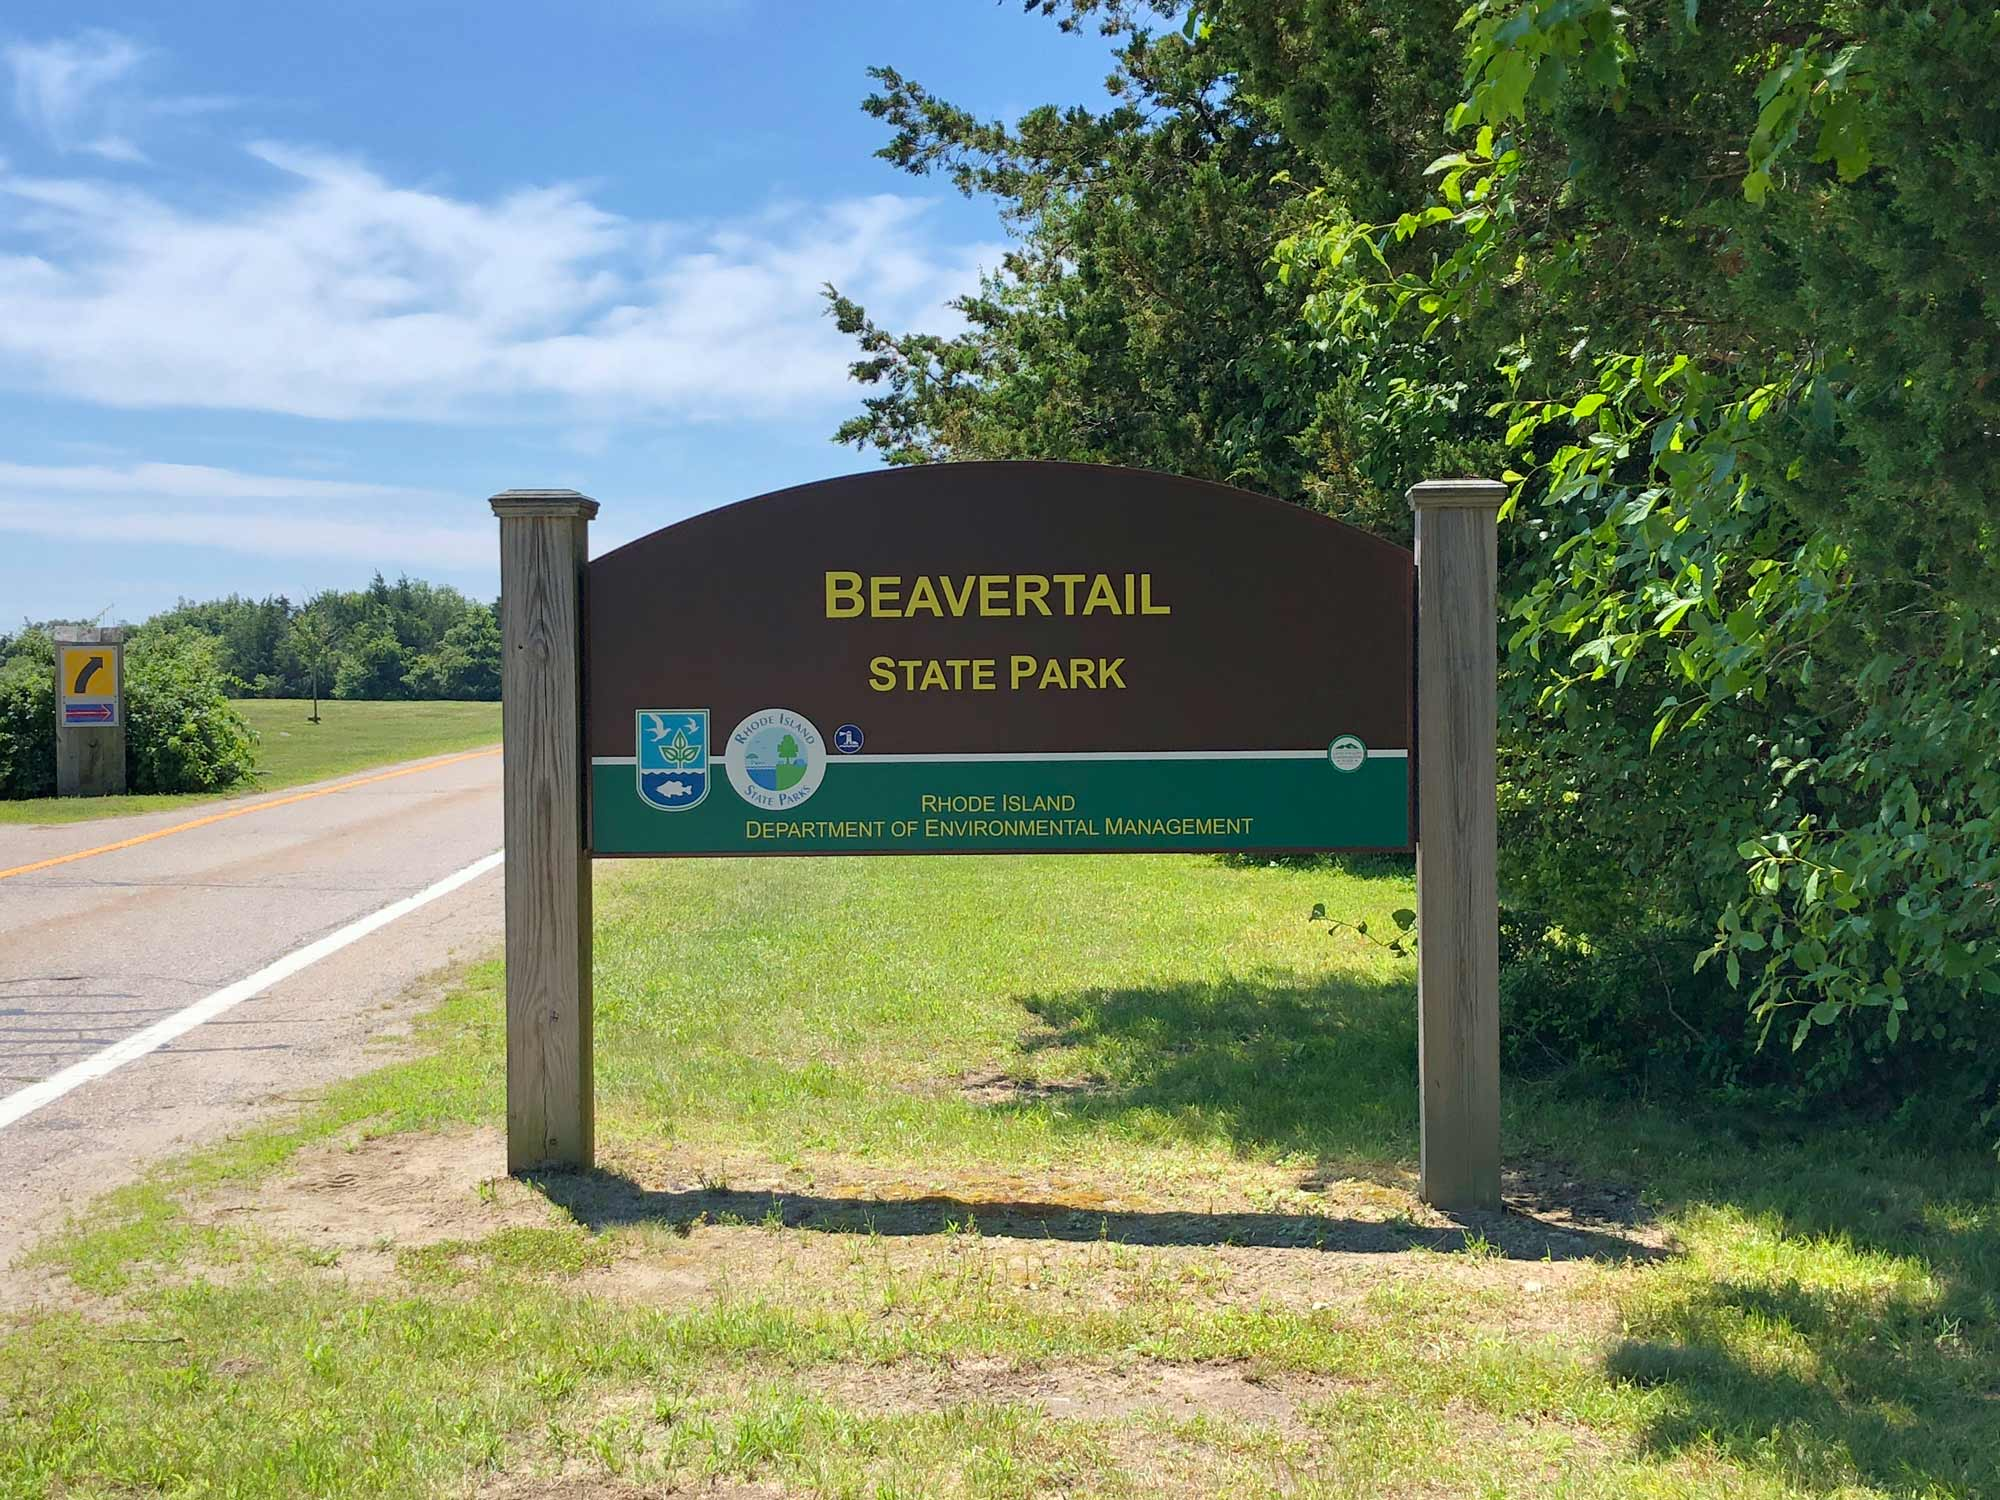 Beavertail State Park and Lighthouse: A Must-See for Rhode Island Vacationgoers